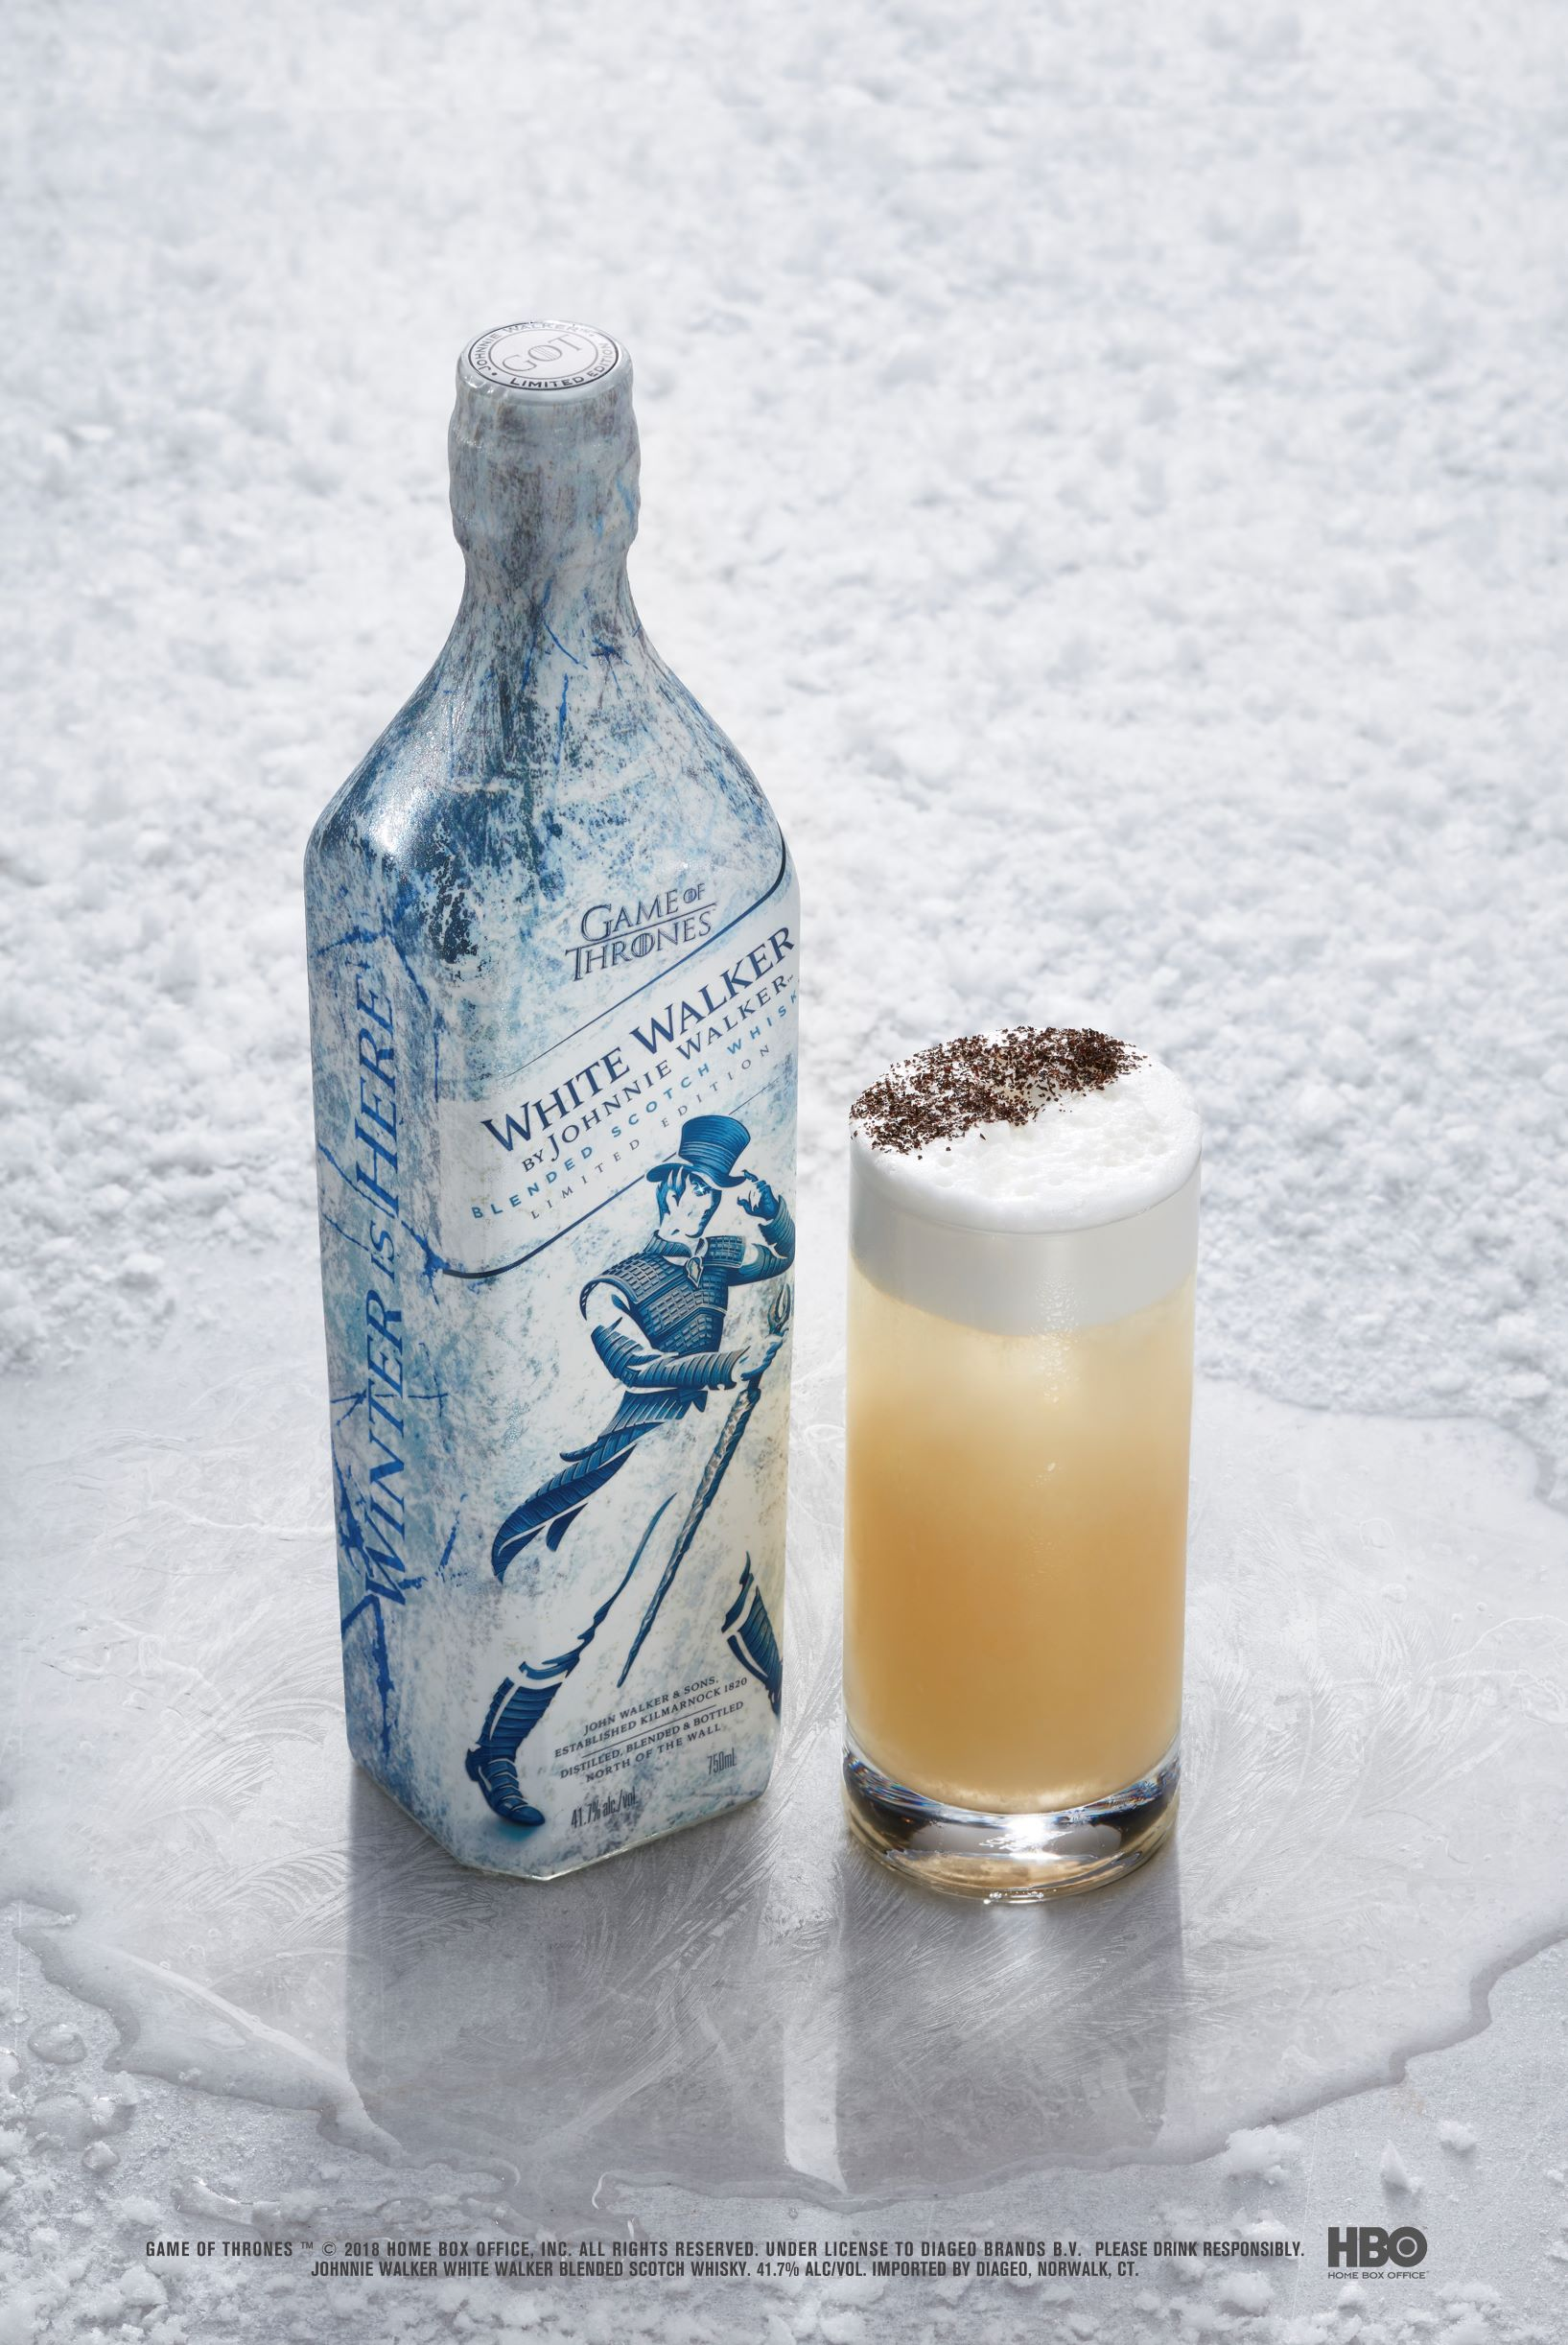 Game Of Thrones Beyond The Wall Game Of Thrones Wine Cosmo Cocktail Johnnie Walker